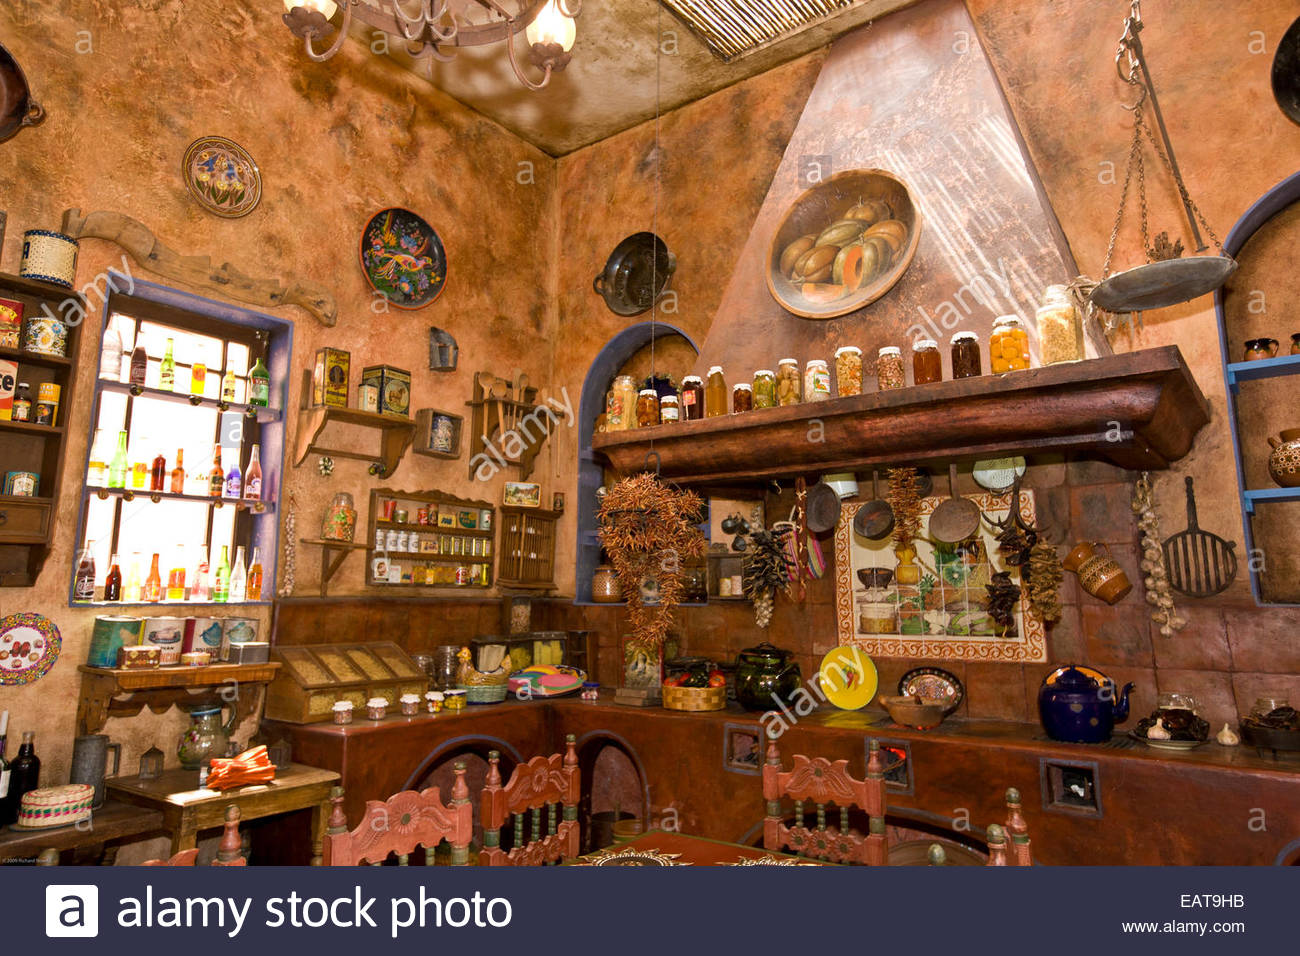 Casa Canela Restaurant's old fashioned kitchen dining room. - Stock Image